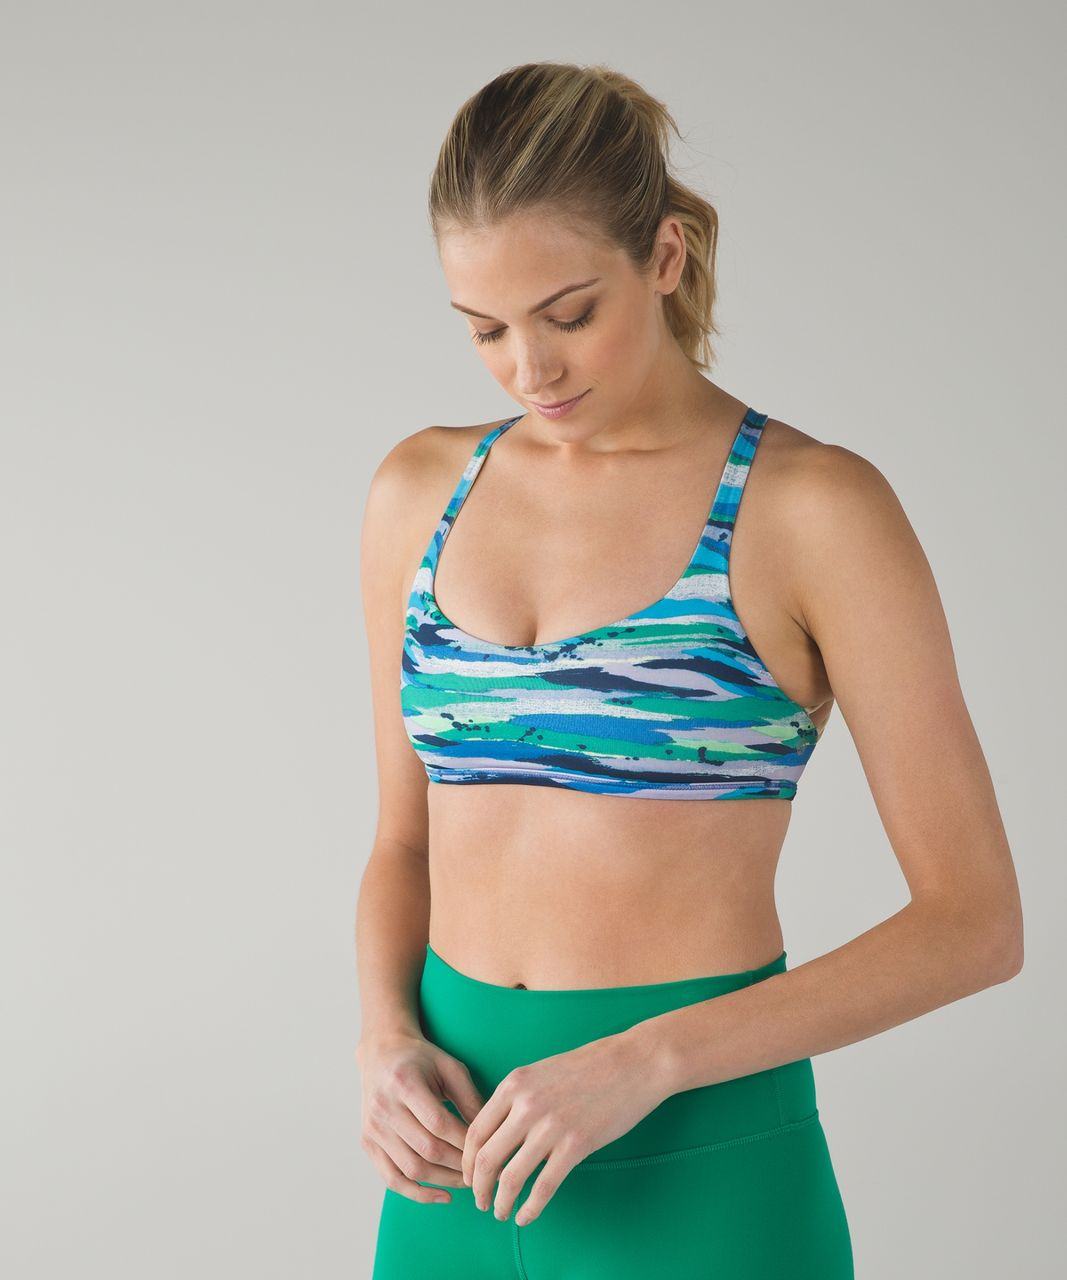 Lululemon Free To Be Bra (Wild) - Seven Wonders Multi / Zest